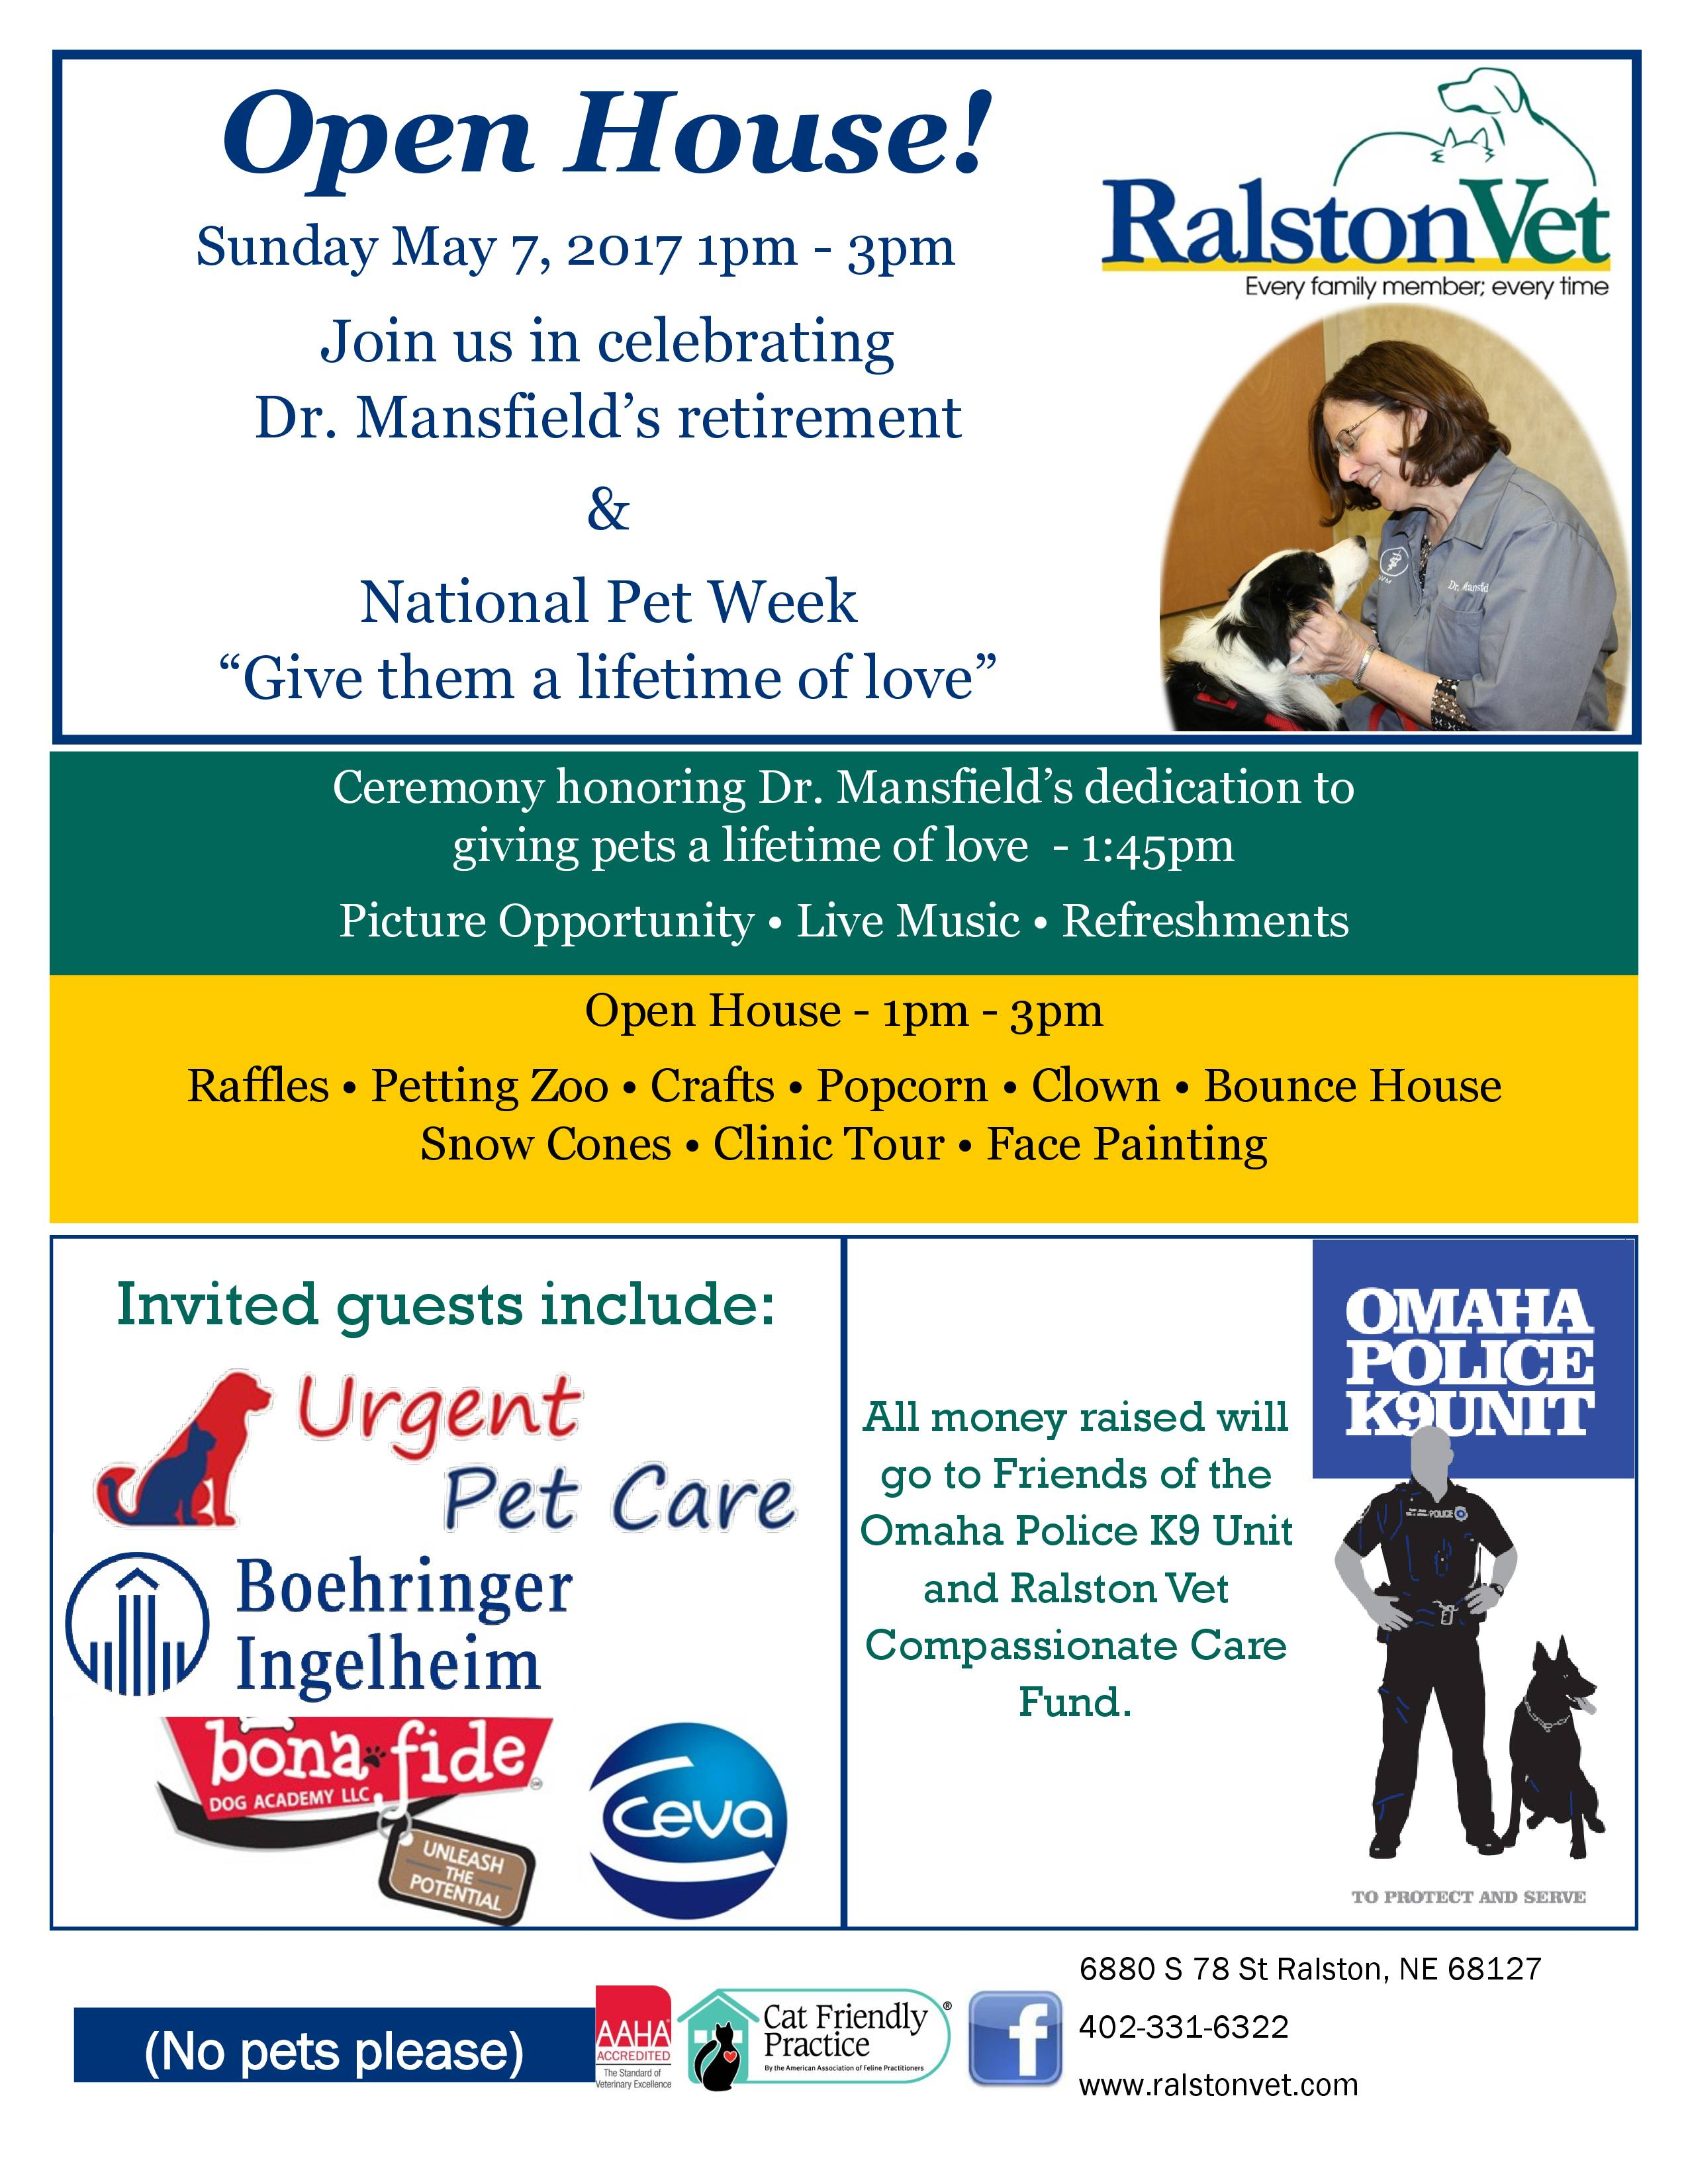 events pets in omaha and national pet week there will be raffles activities for kids and more funds raised through activities benefit area k9 cops see flyer below for